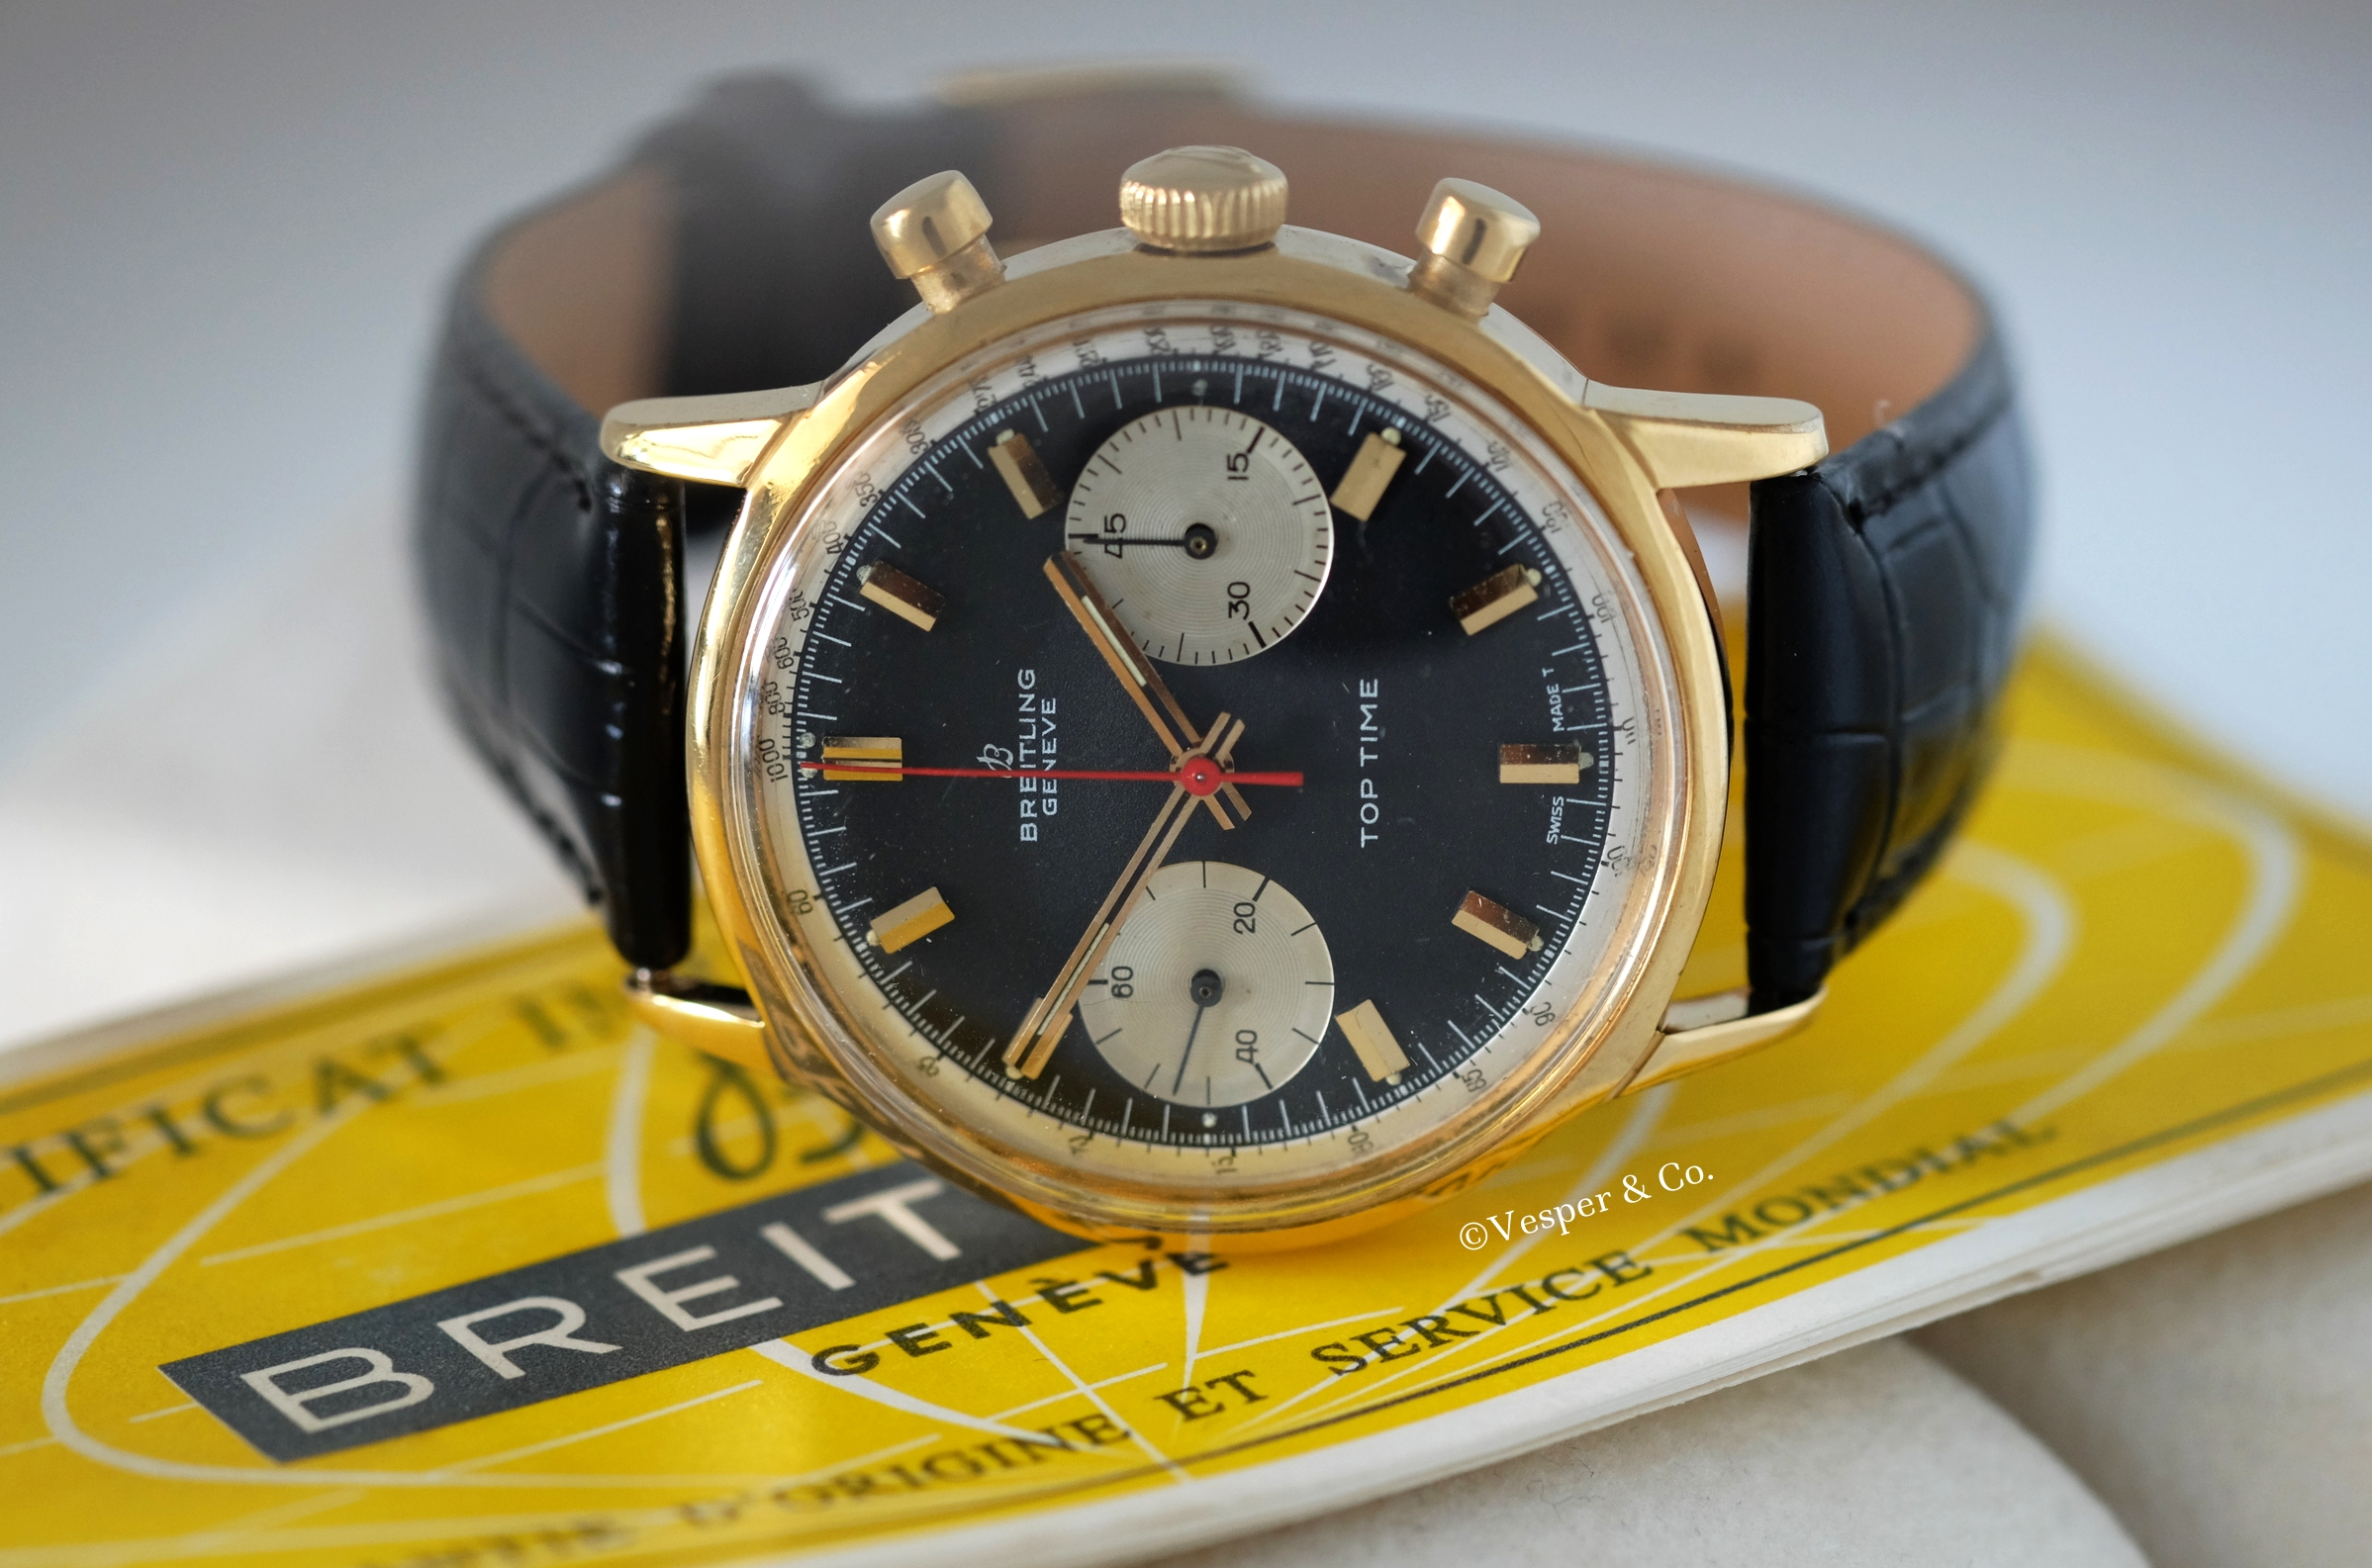 Breitling Top Time Ref. 2000-33   SOLD